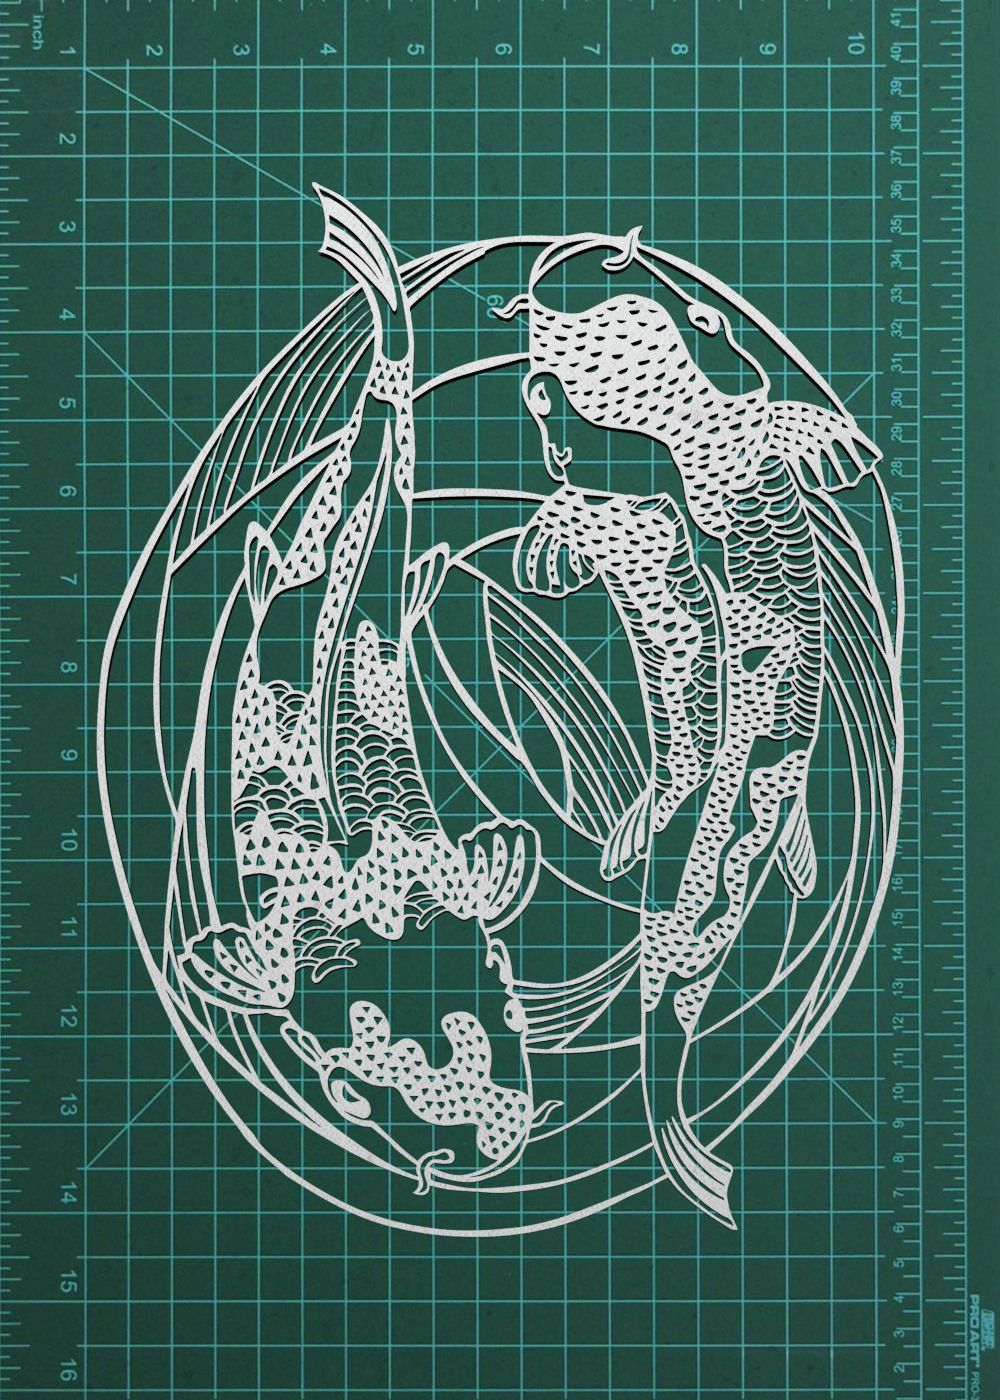 Koi Fish Handmade Papercut Art Home Decor   Japanese Style Swimming Koi// Carp Papercutting Original Wall Art For Home Decor, Unique Gift